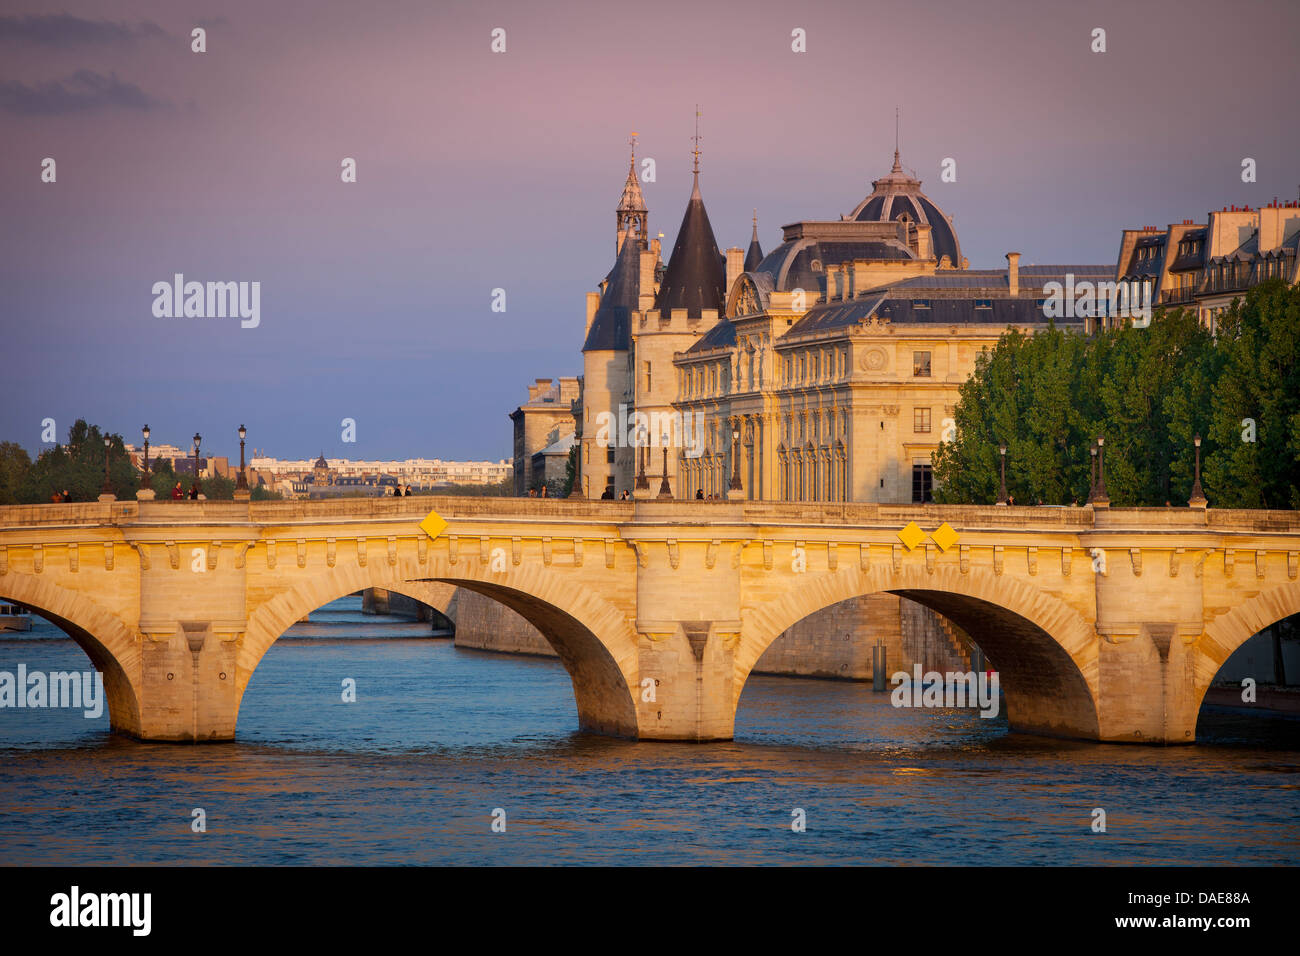 Setting sunlight over River Seine, Pont Neuf and the Conciergerie, Paris France - Stock Image